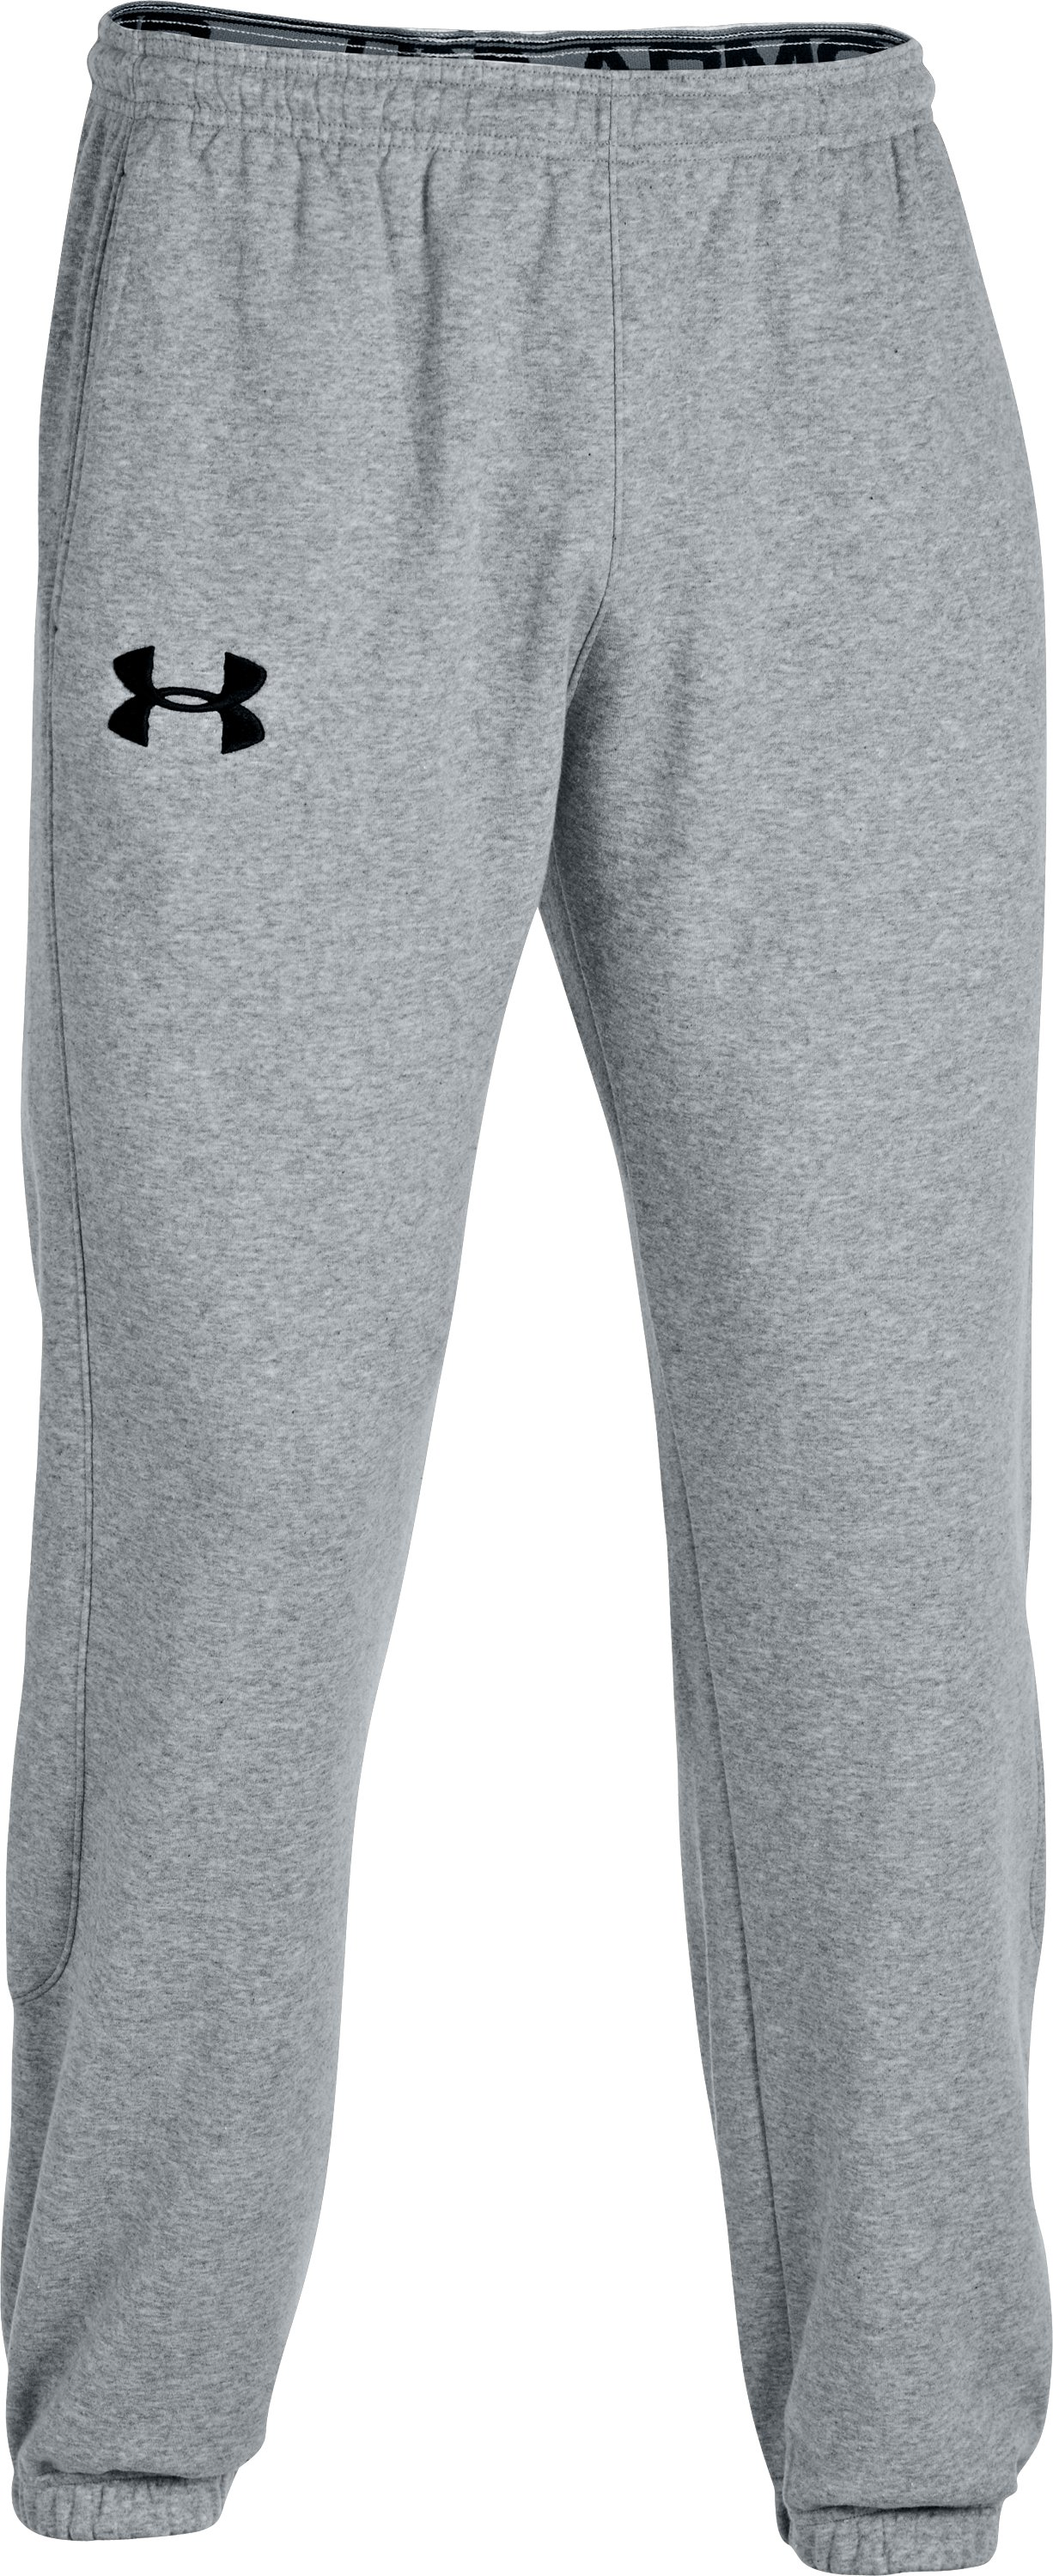 Men's Charged Cotton® Storm Cuffed Pants, True Gray Heather, zoomed image